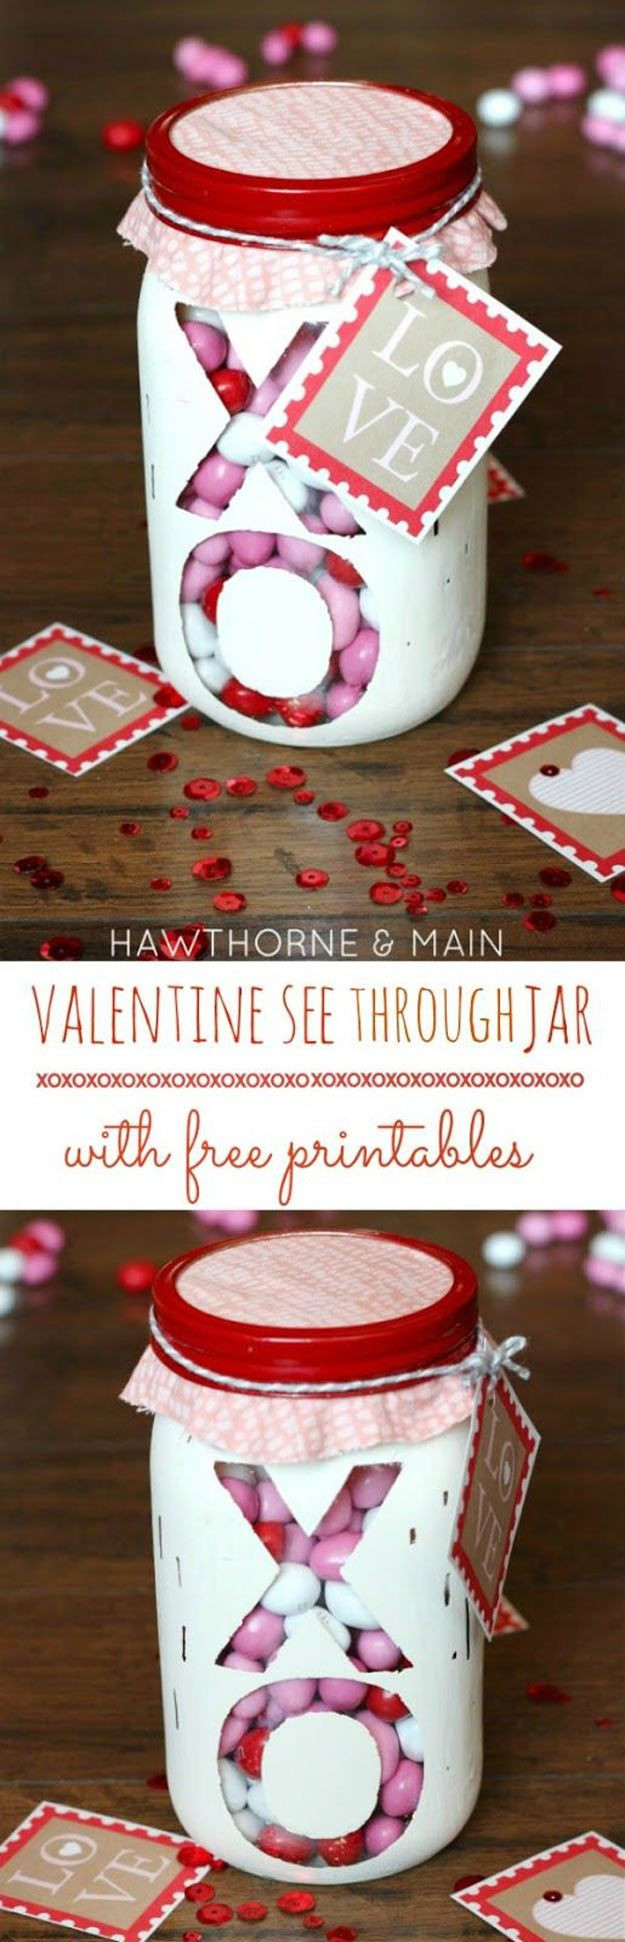 Diy Valentines Gift Ideas  Best 25 Diy valentine s ts ideas on Pinterest